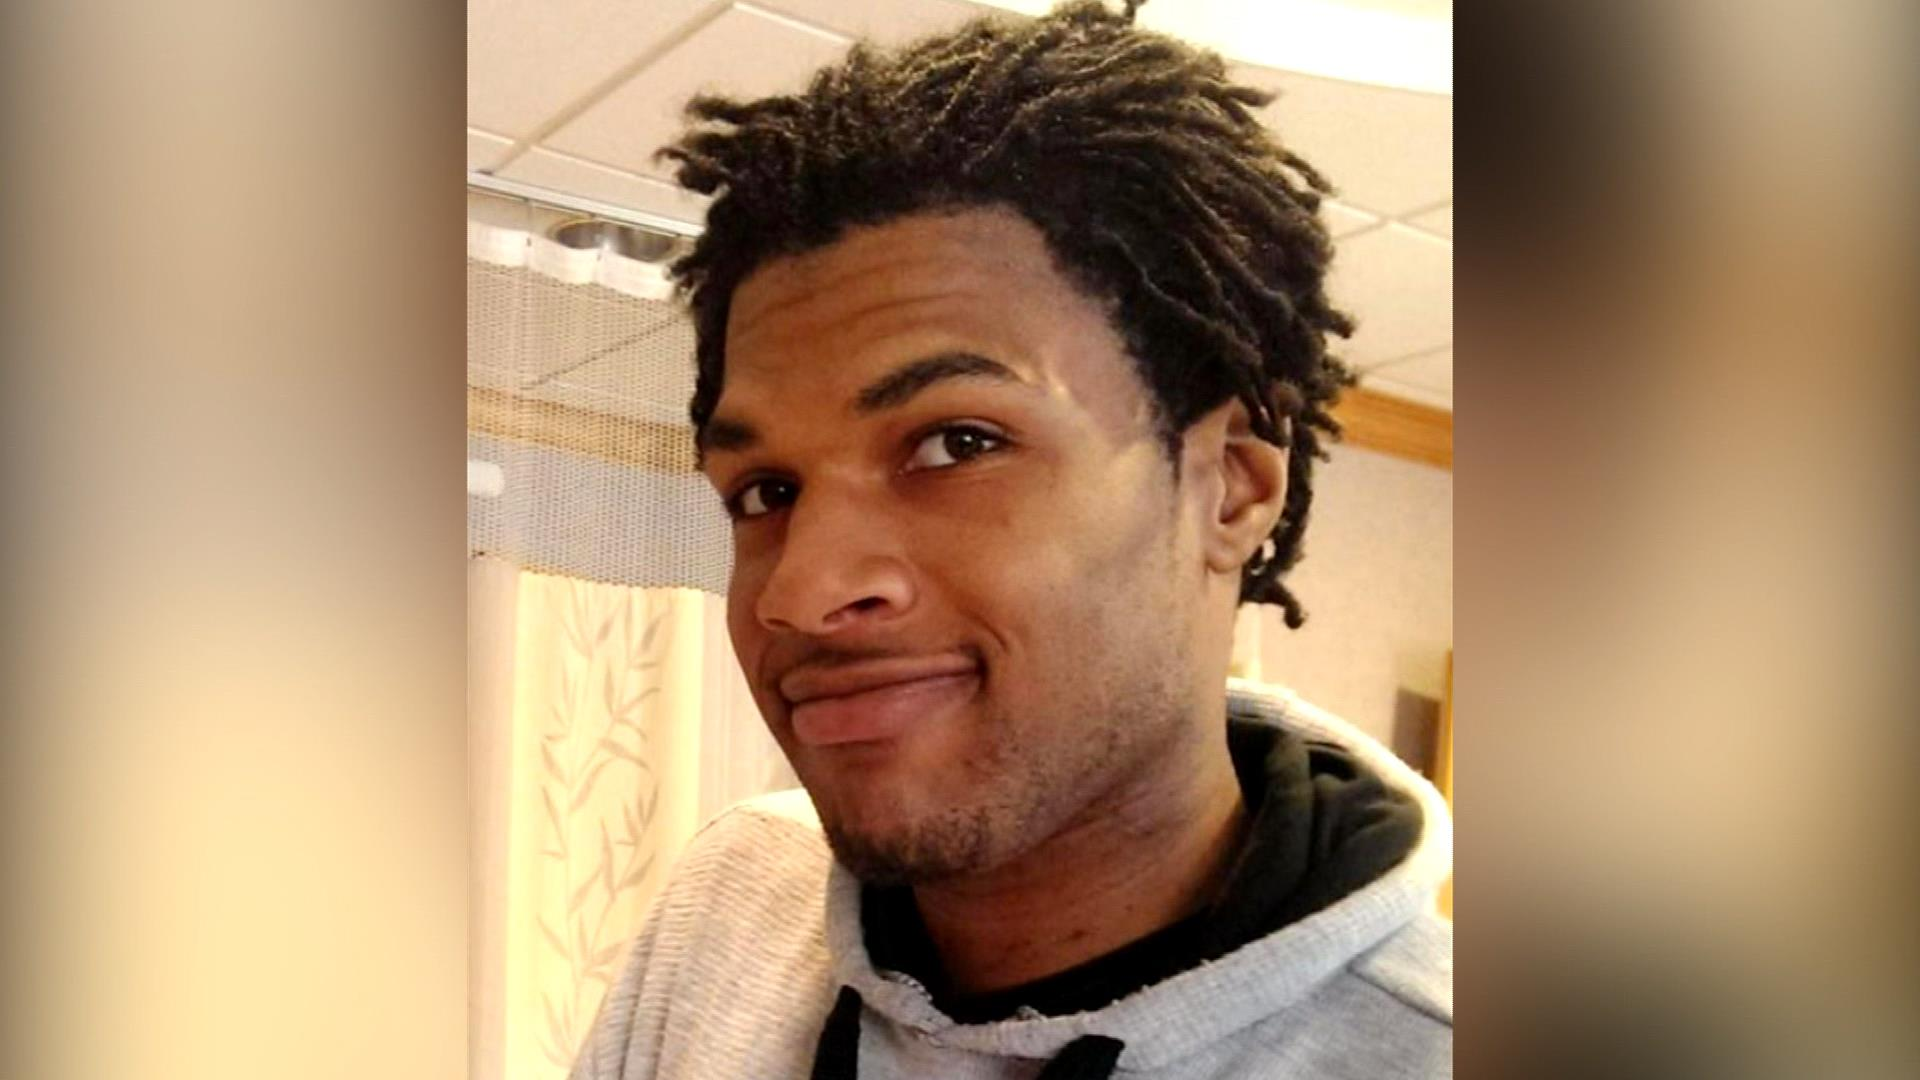 John Crawford III's family takes action